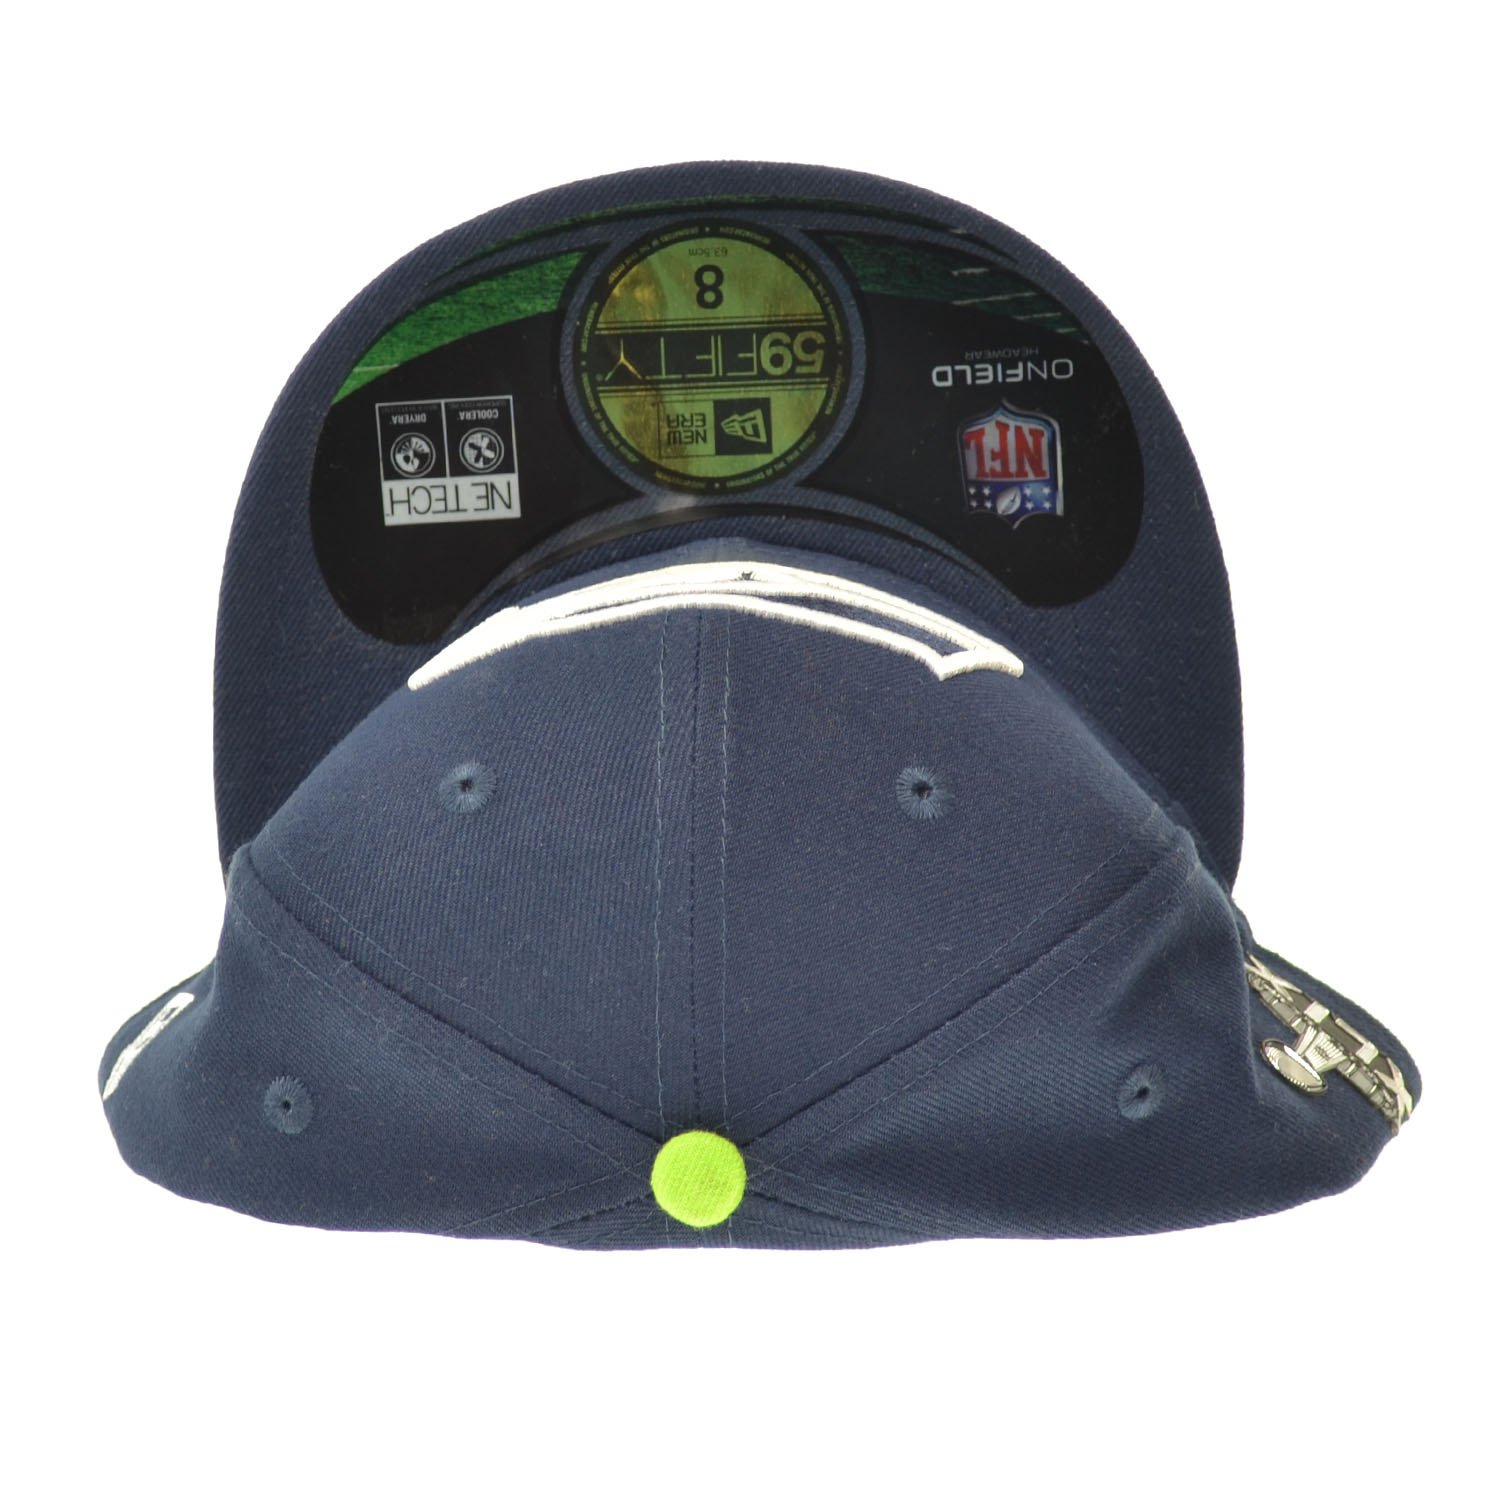 big sale a3cca 35cd2 New Era Seattle Seahawks Superbowl XLIX NFL 59FIFTY Official On-Field  Fitted Cap Blue ne-nfl15-sb-onf-seasea-gam at Amazon Men s Clothing store